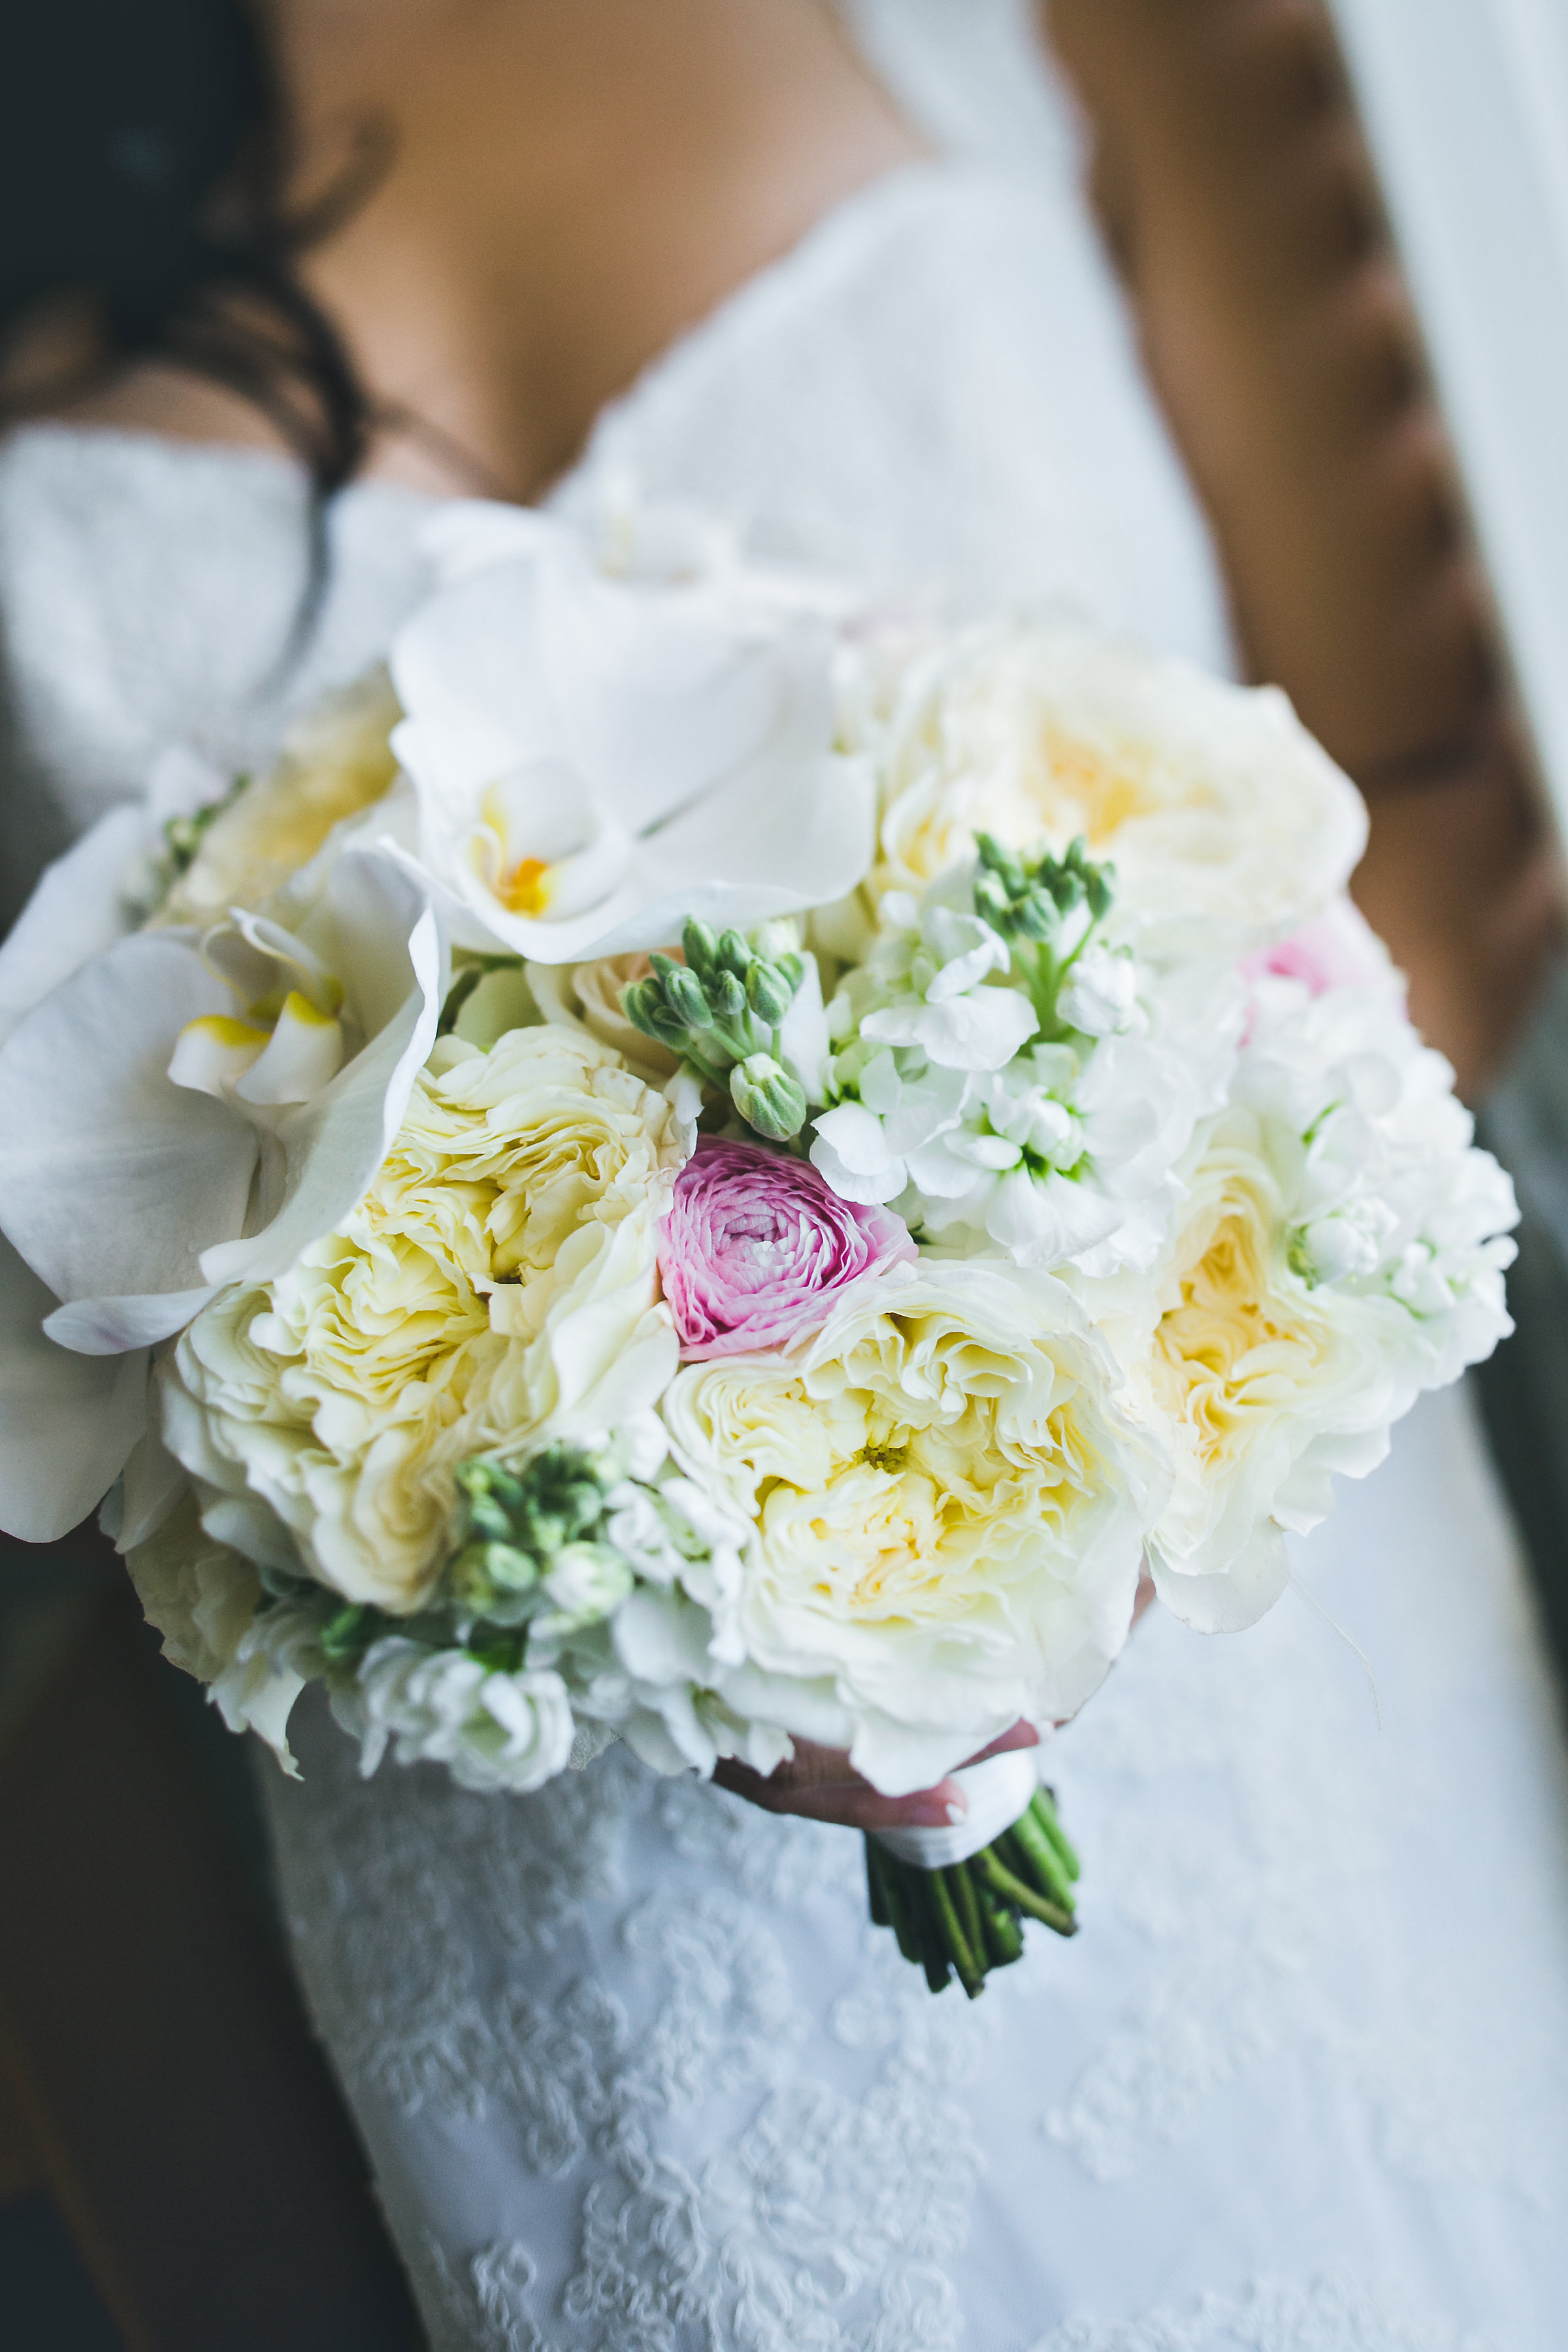 Bridal bouquet by Floral Inspirations